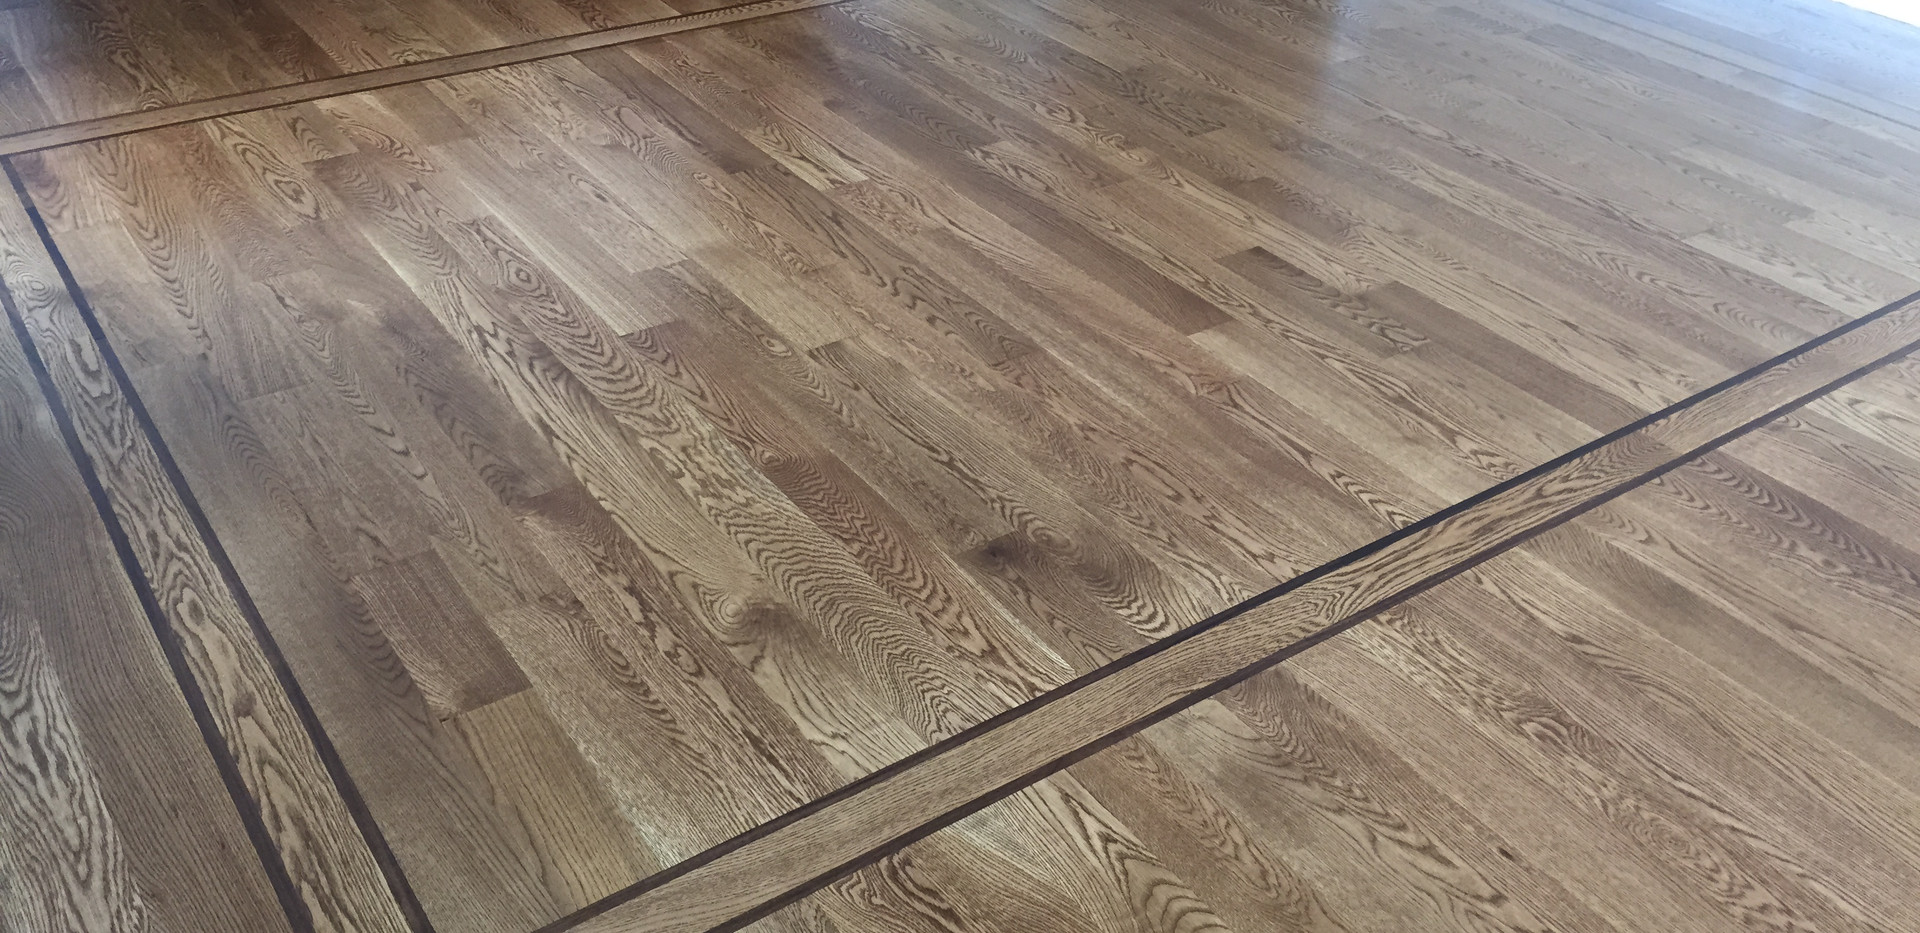 Add a bit more interest to your hardwood flooring by adding an inset border.